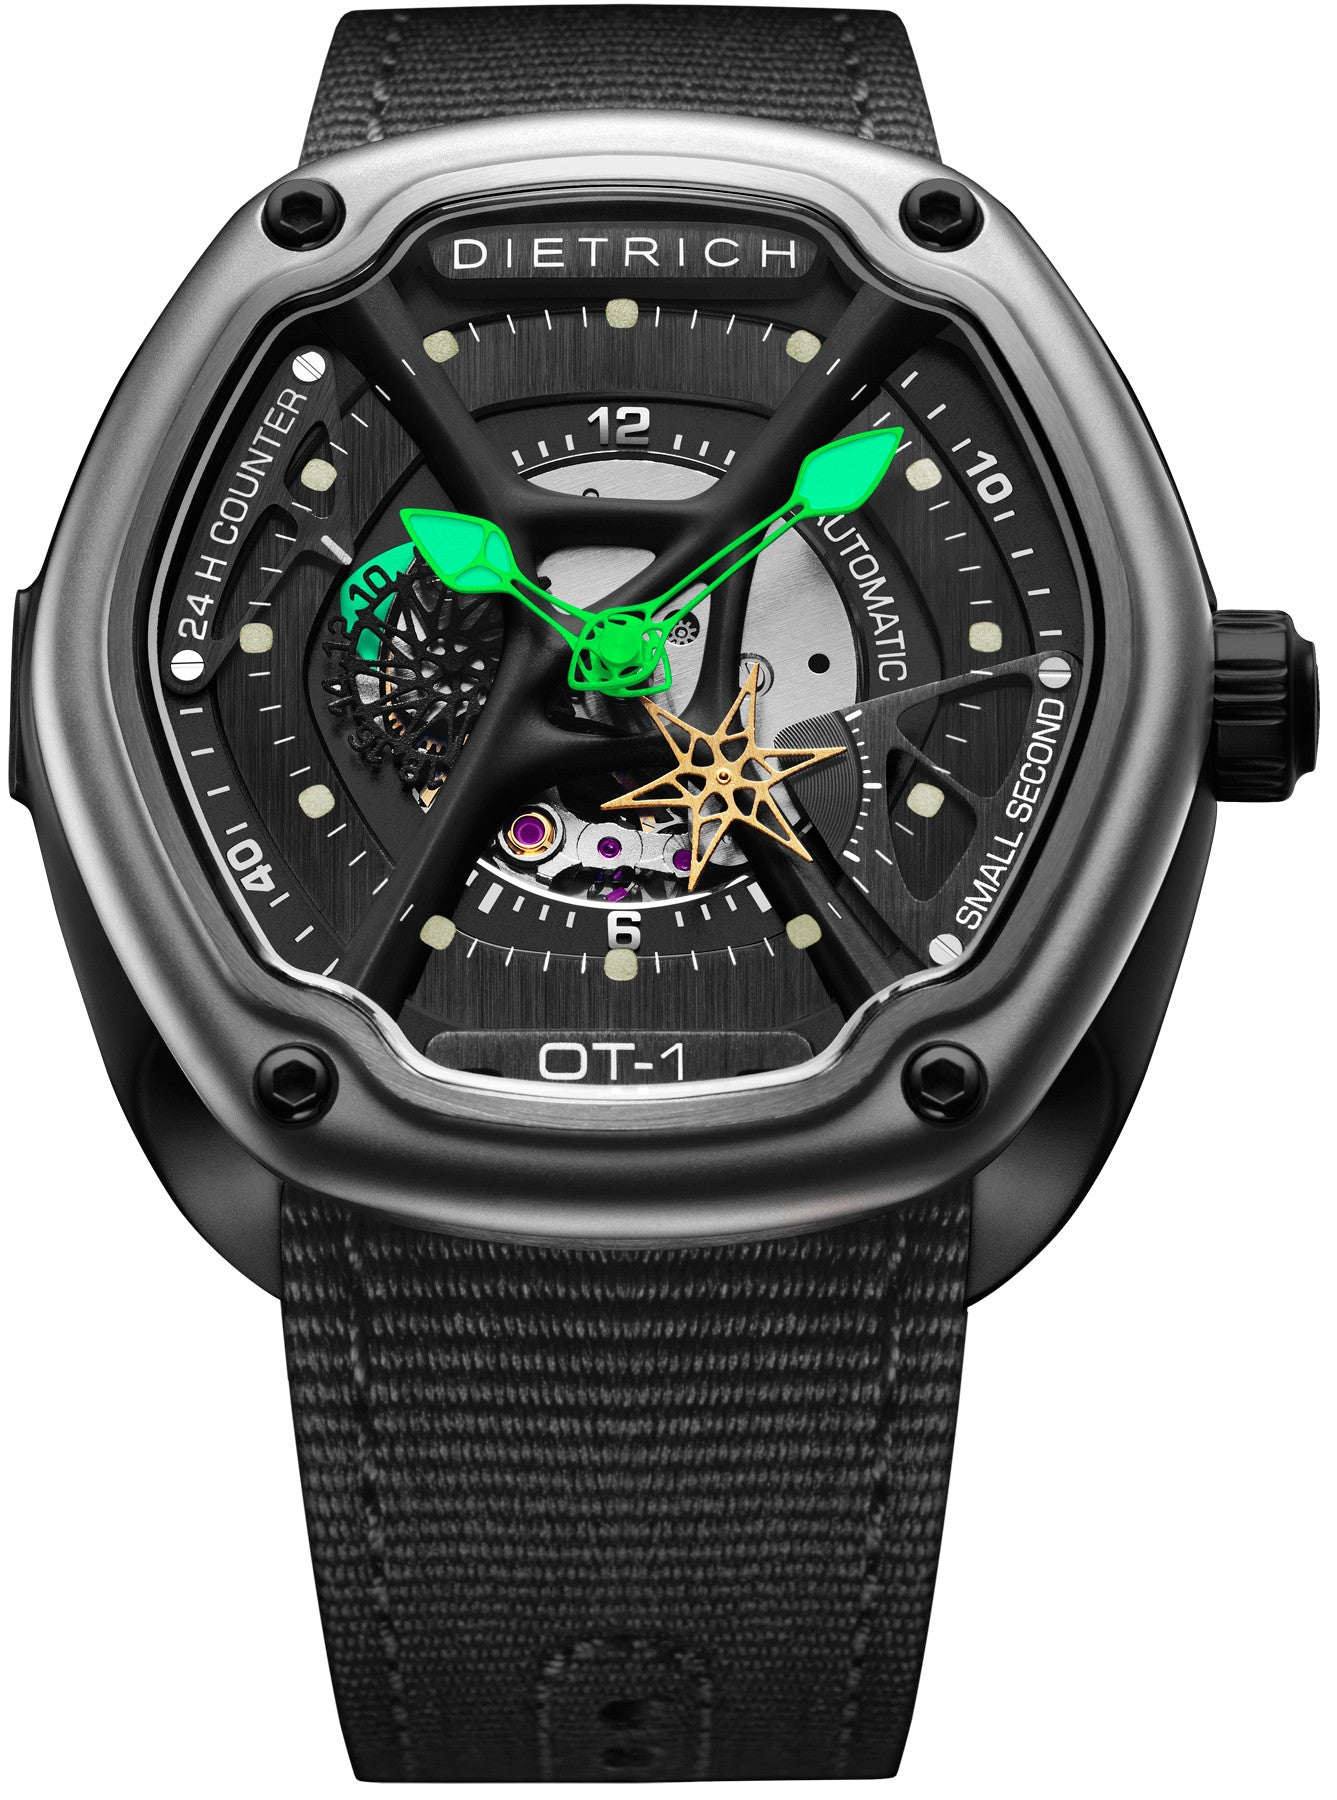 Dietrich Watch OT-1 Green